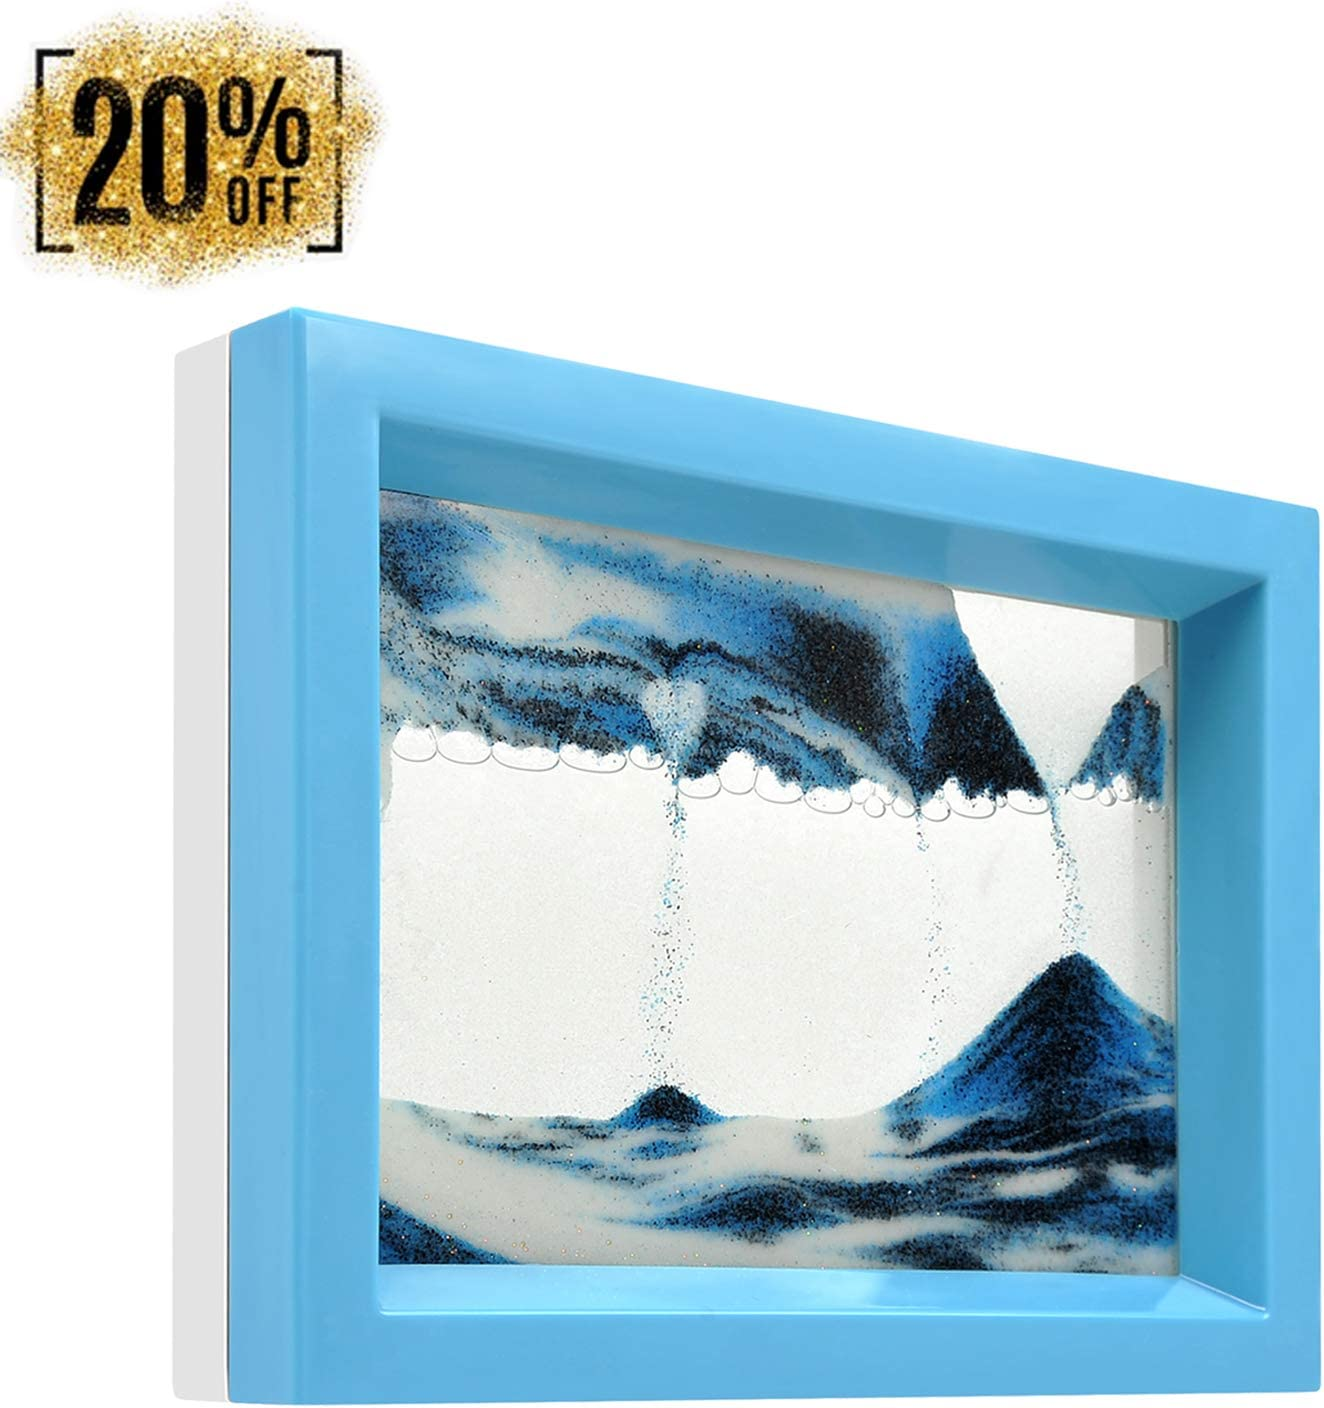 whimsyyy Dynamic Sand Picture Medium Desktop Art Toys Voted Best Gift!(Ocean Heart) - Black White Blue (Blue, Black,White,Blue)